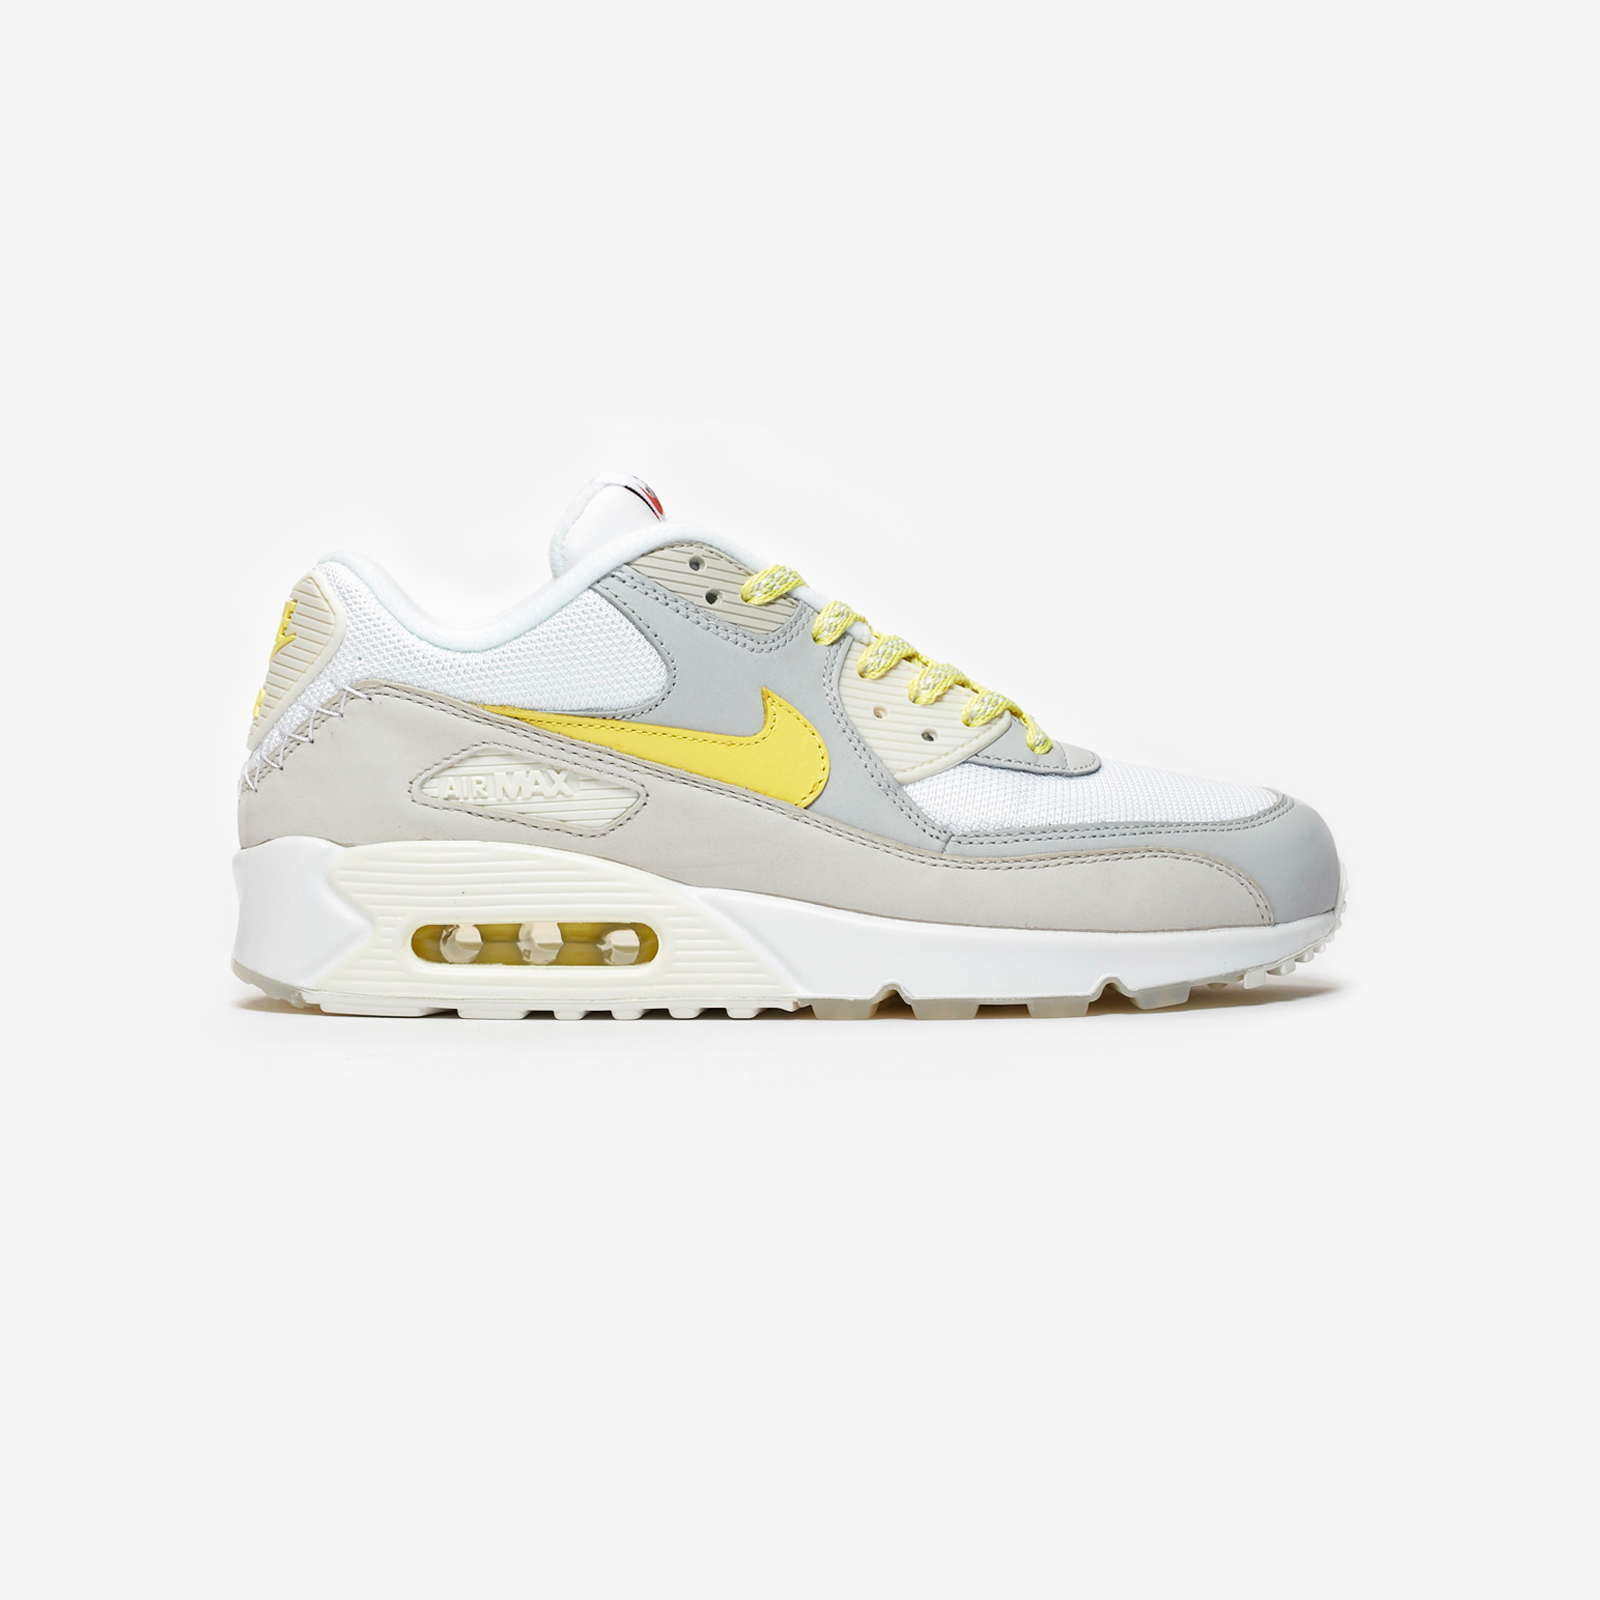 Nike Air Max 90 Mixtape Side A | CI6394 100